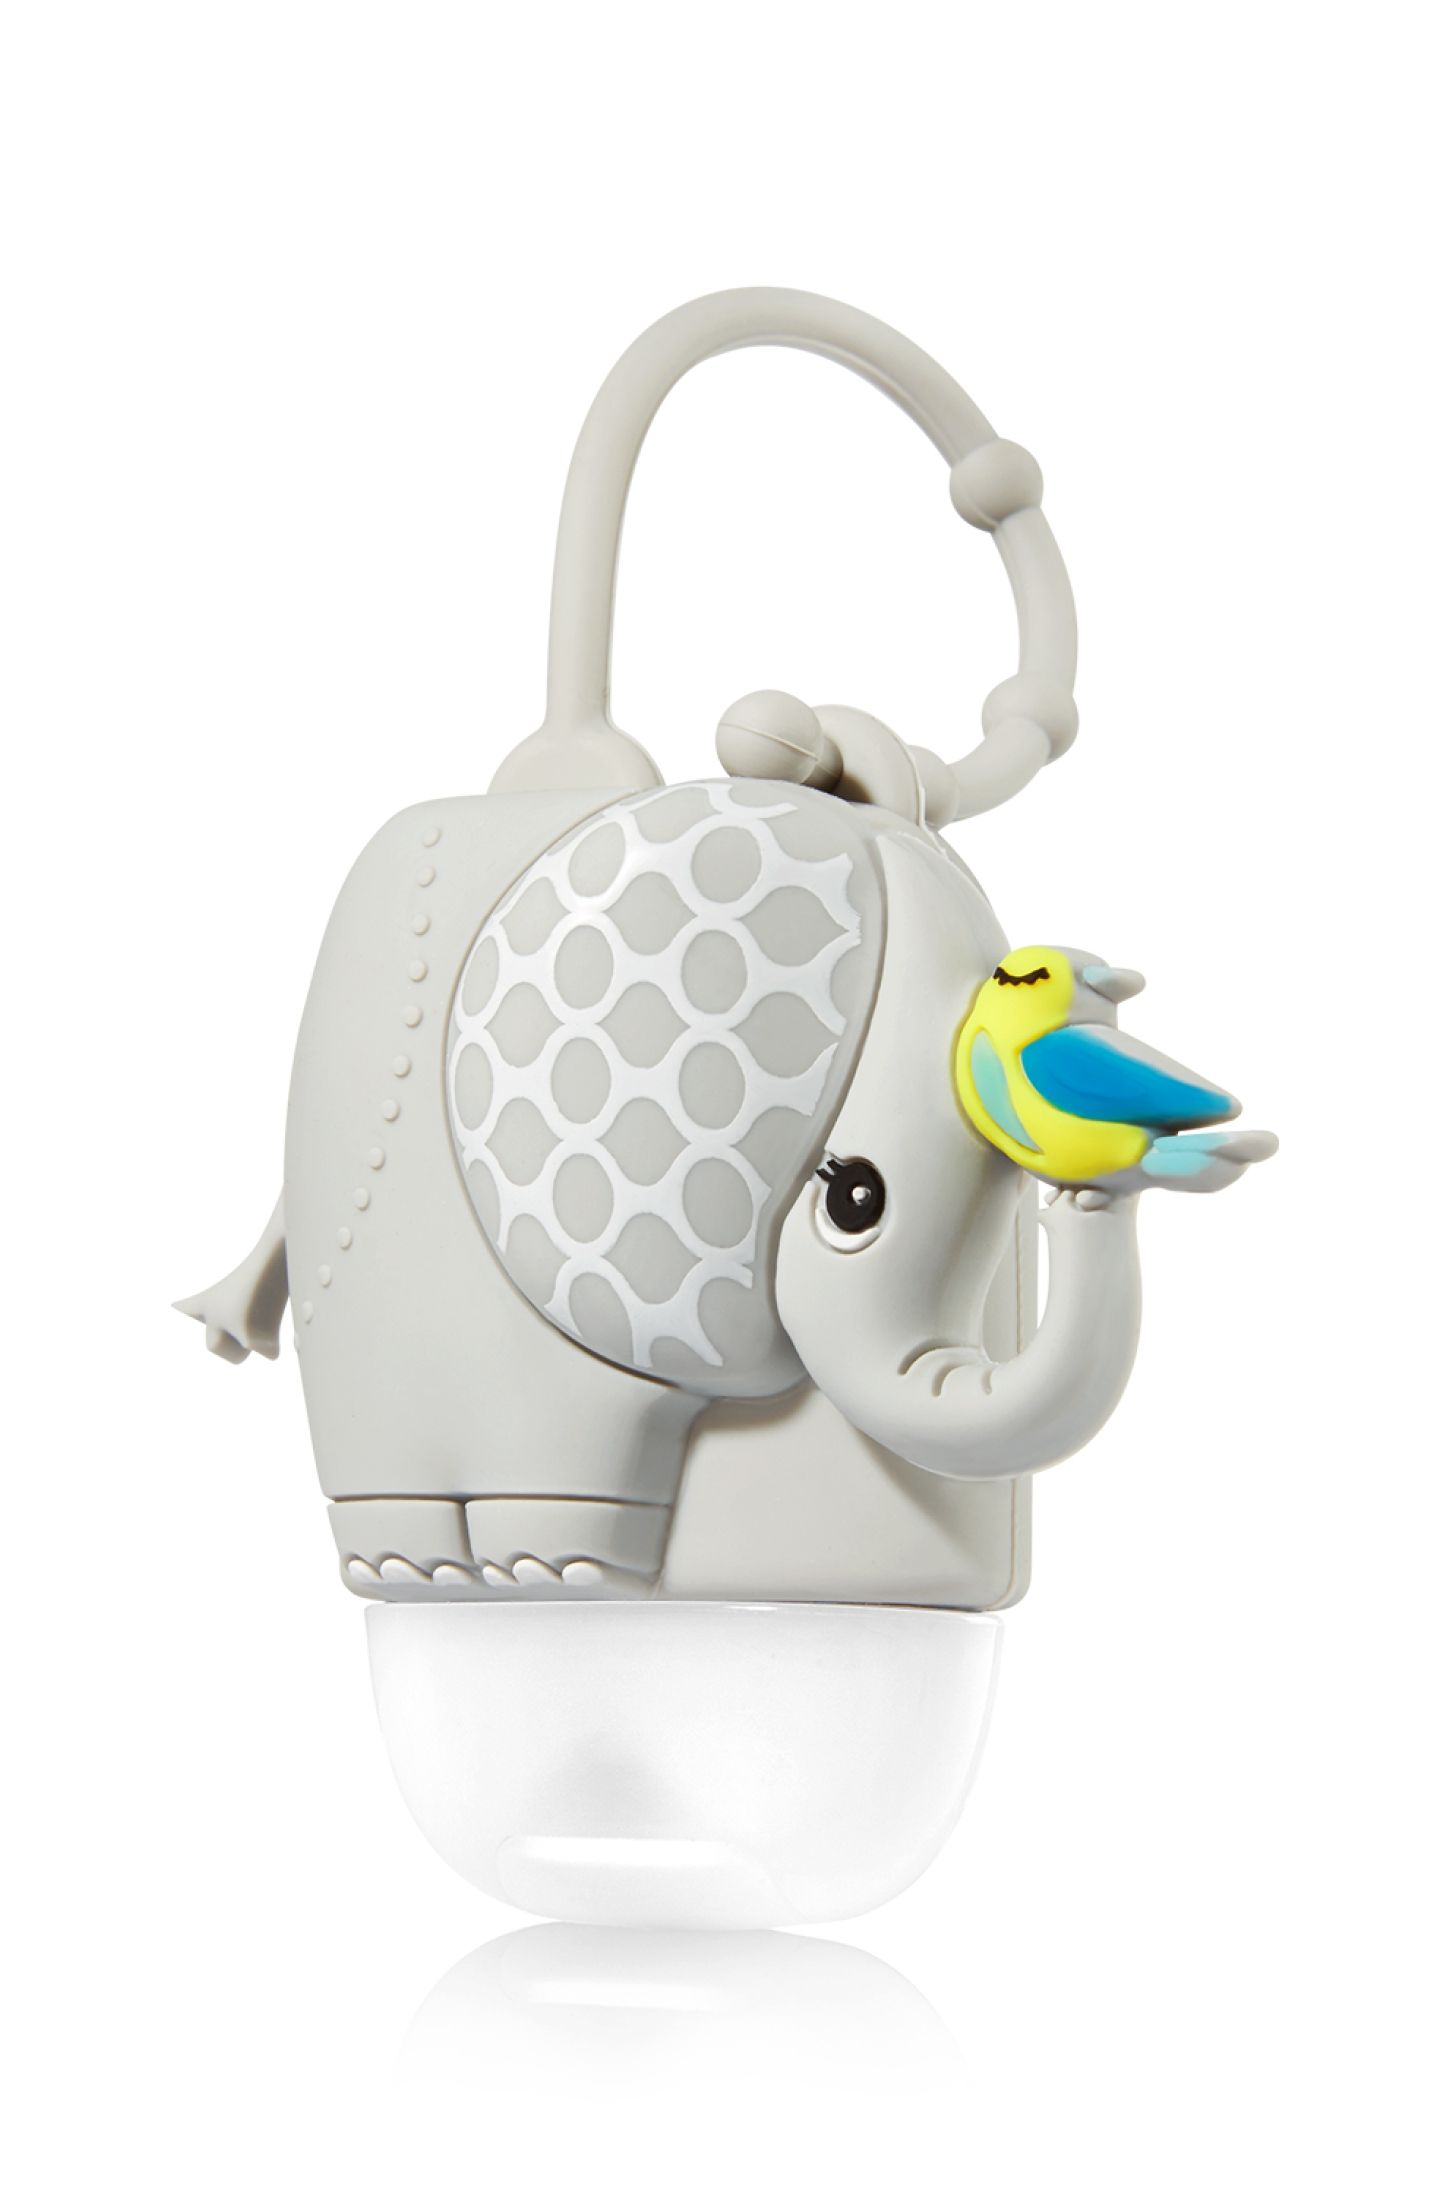 Elephant Light Up Pocketbac Holder Bath Body Works This Is